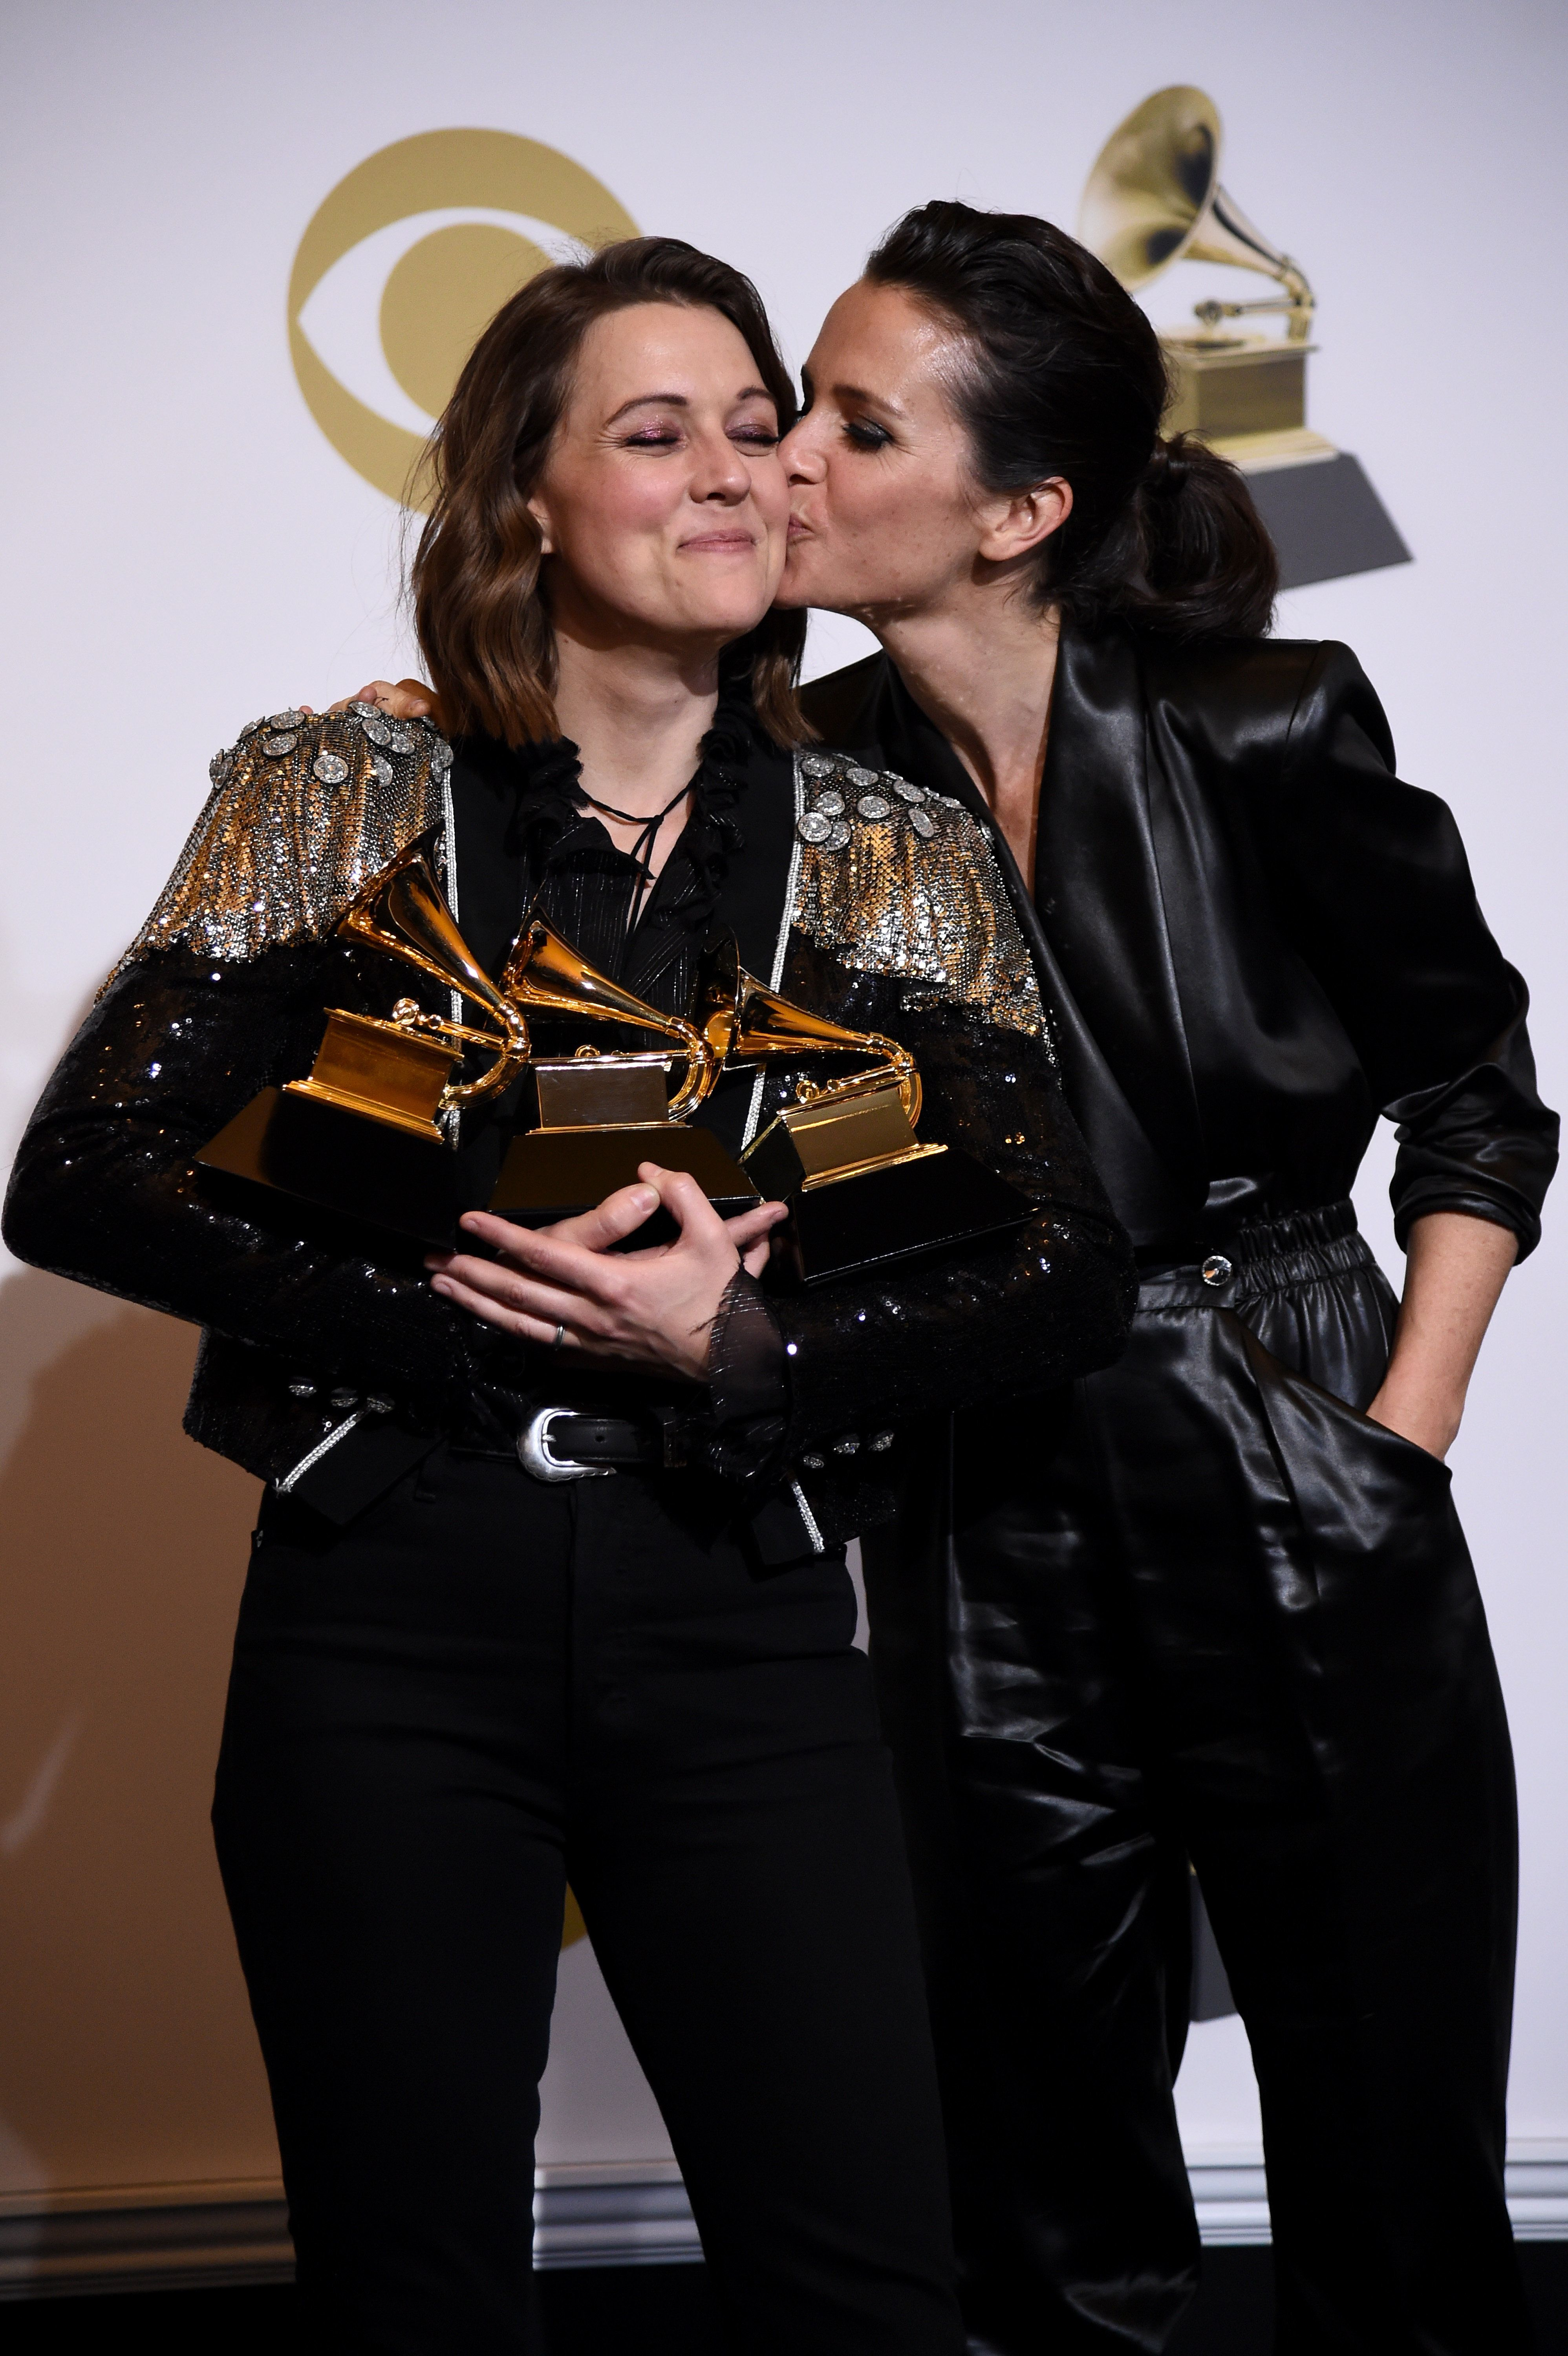 Brandi Carlile Recalls Coming Out Struggle In Emotional Grammys Speech